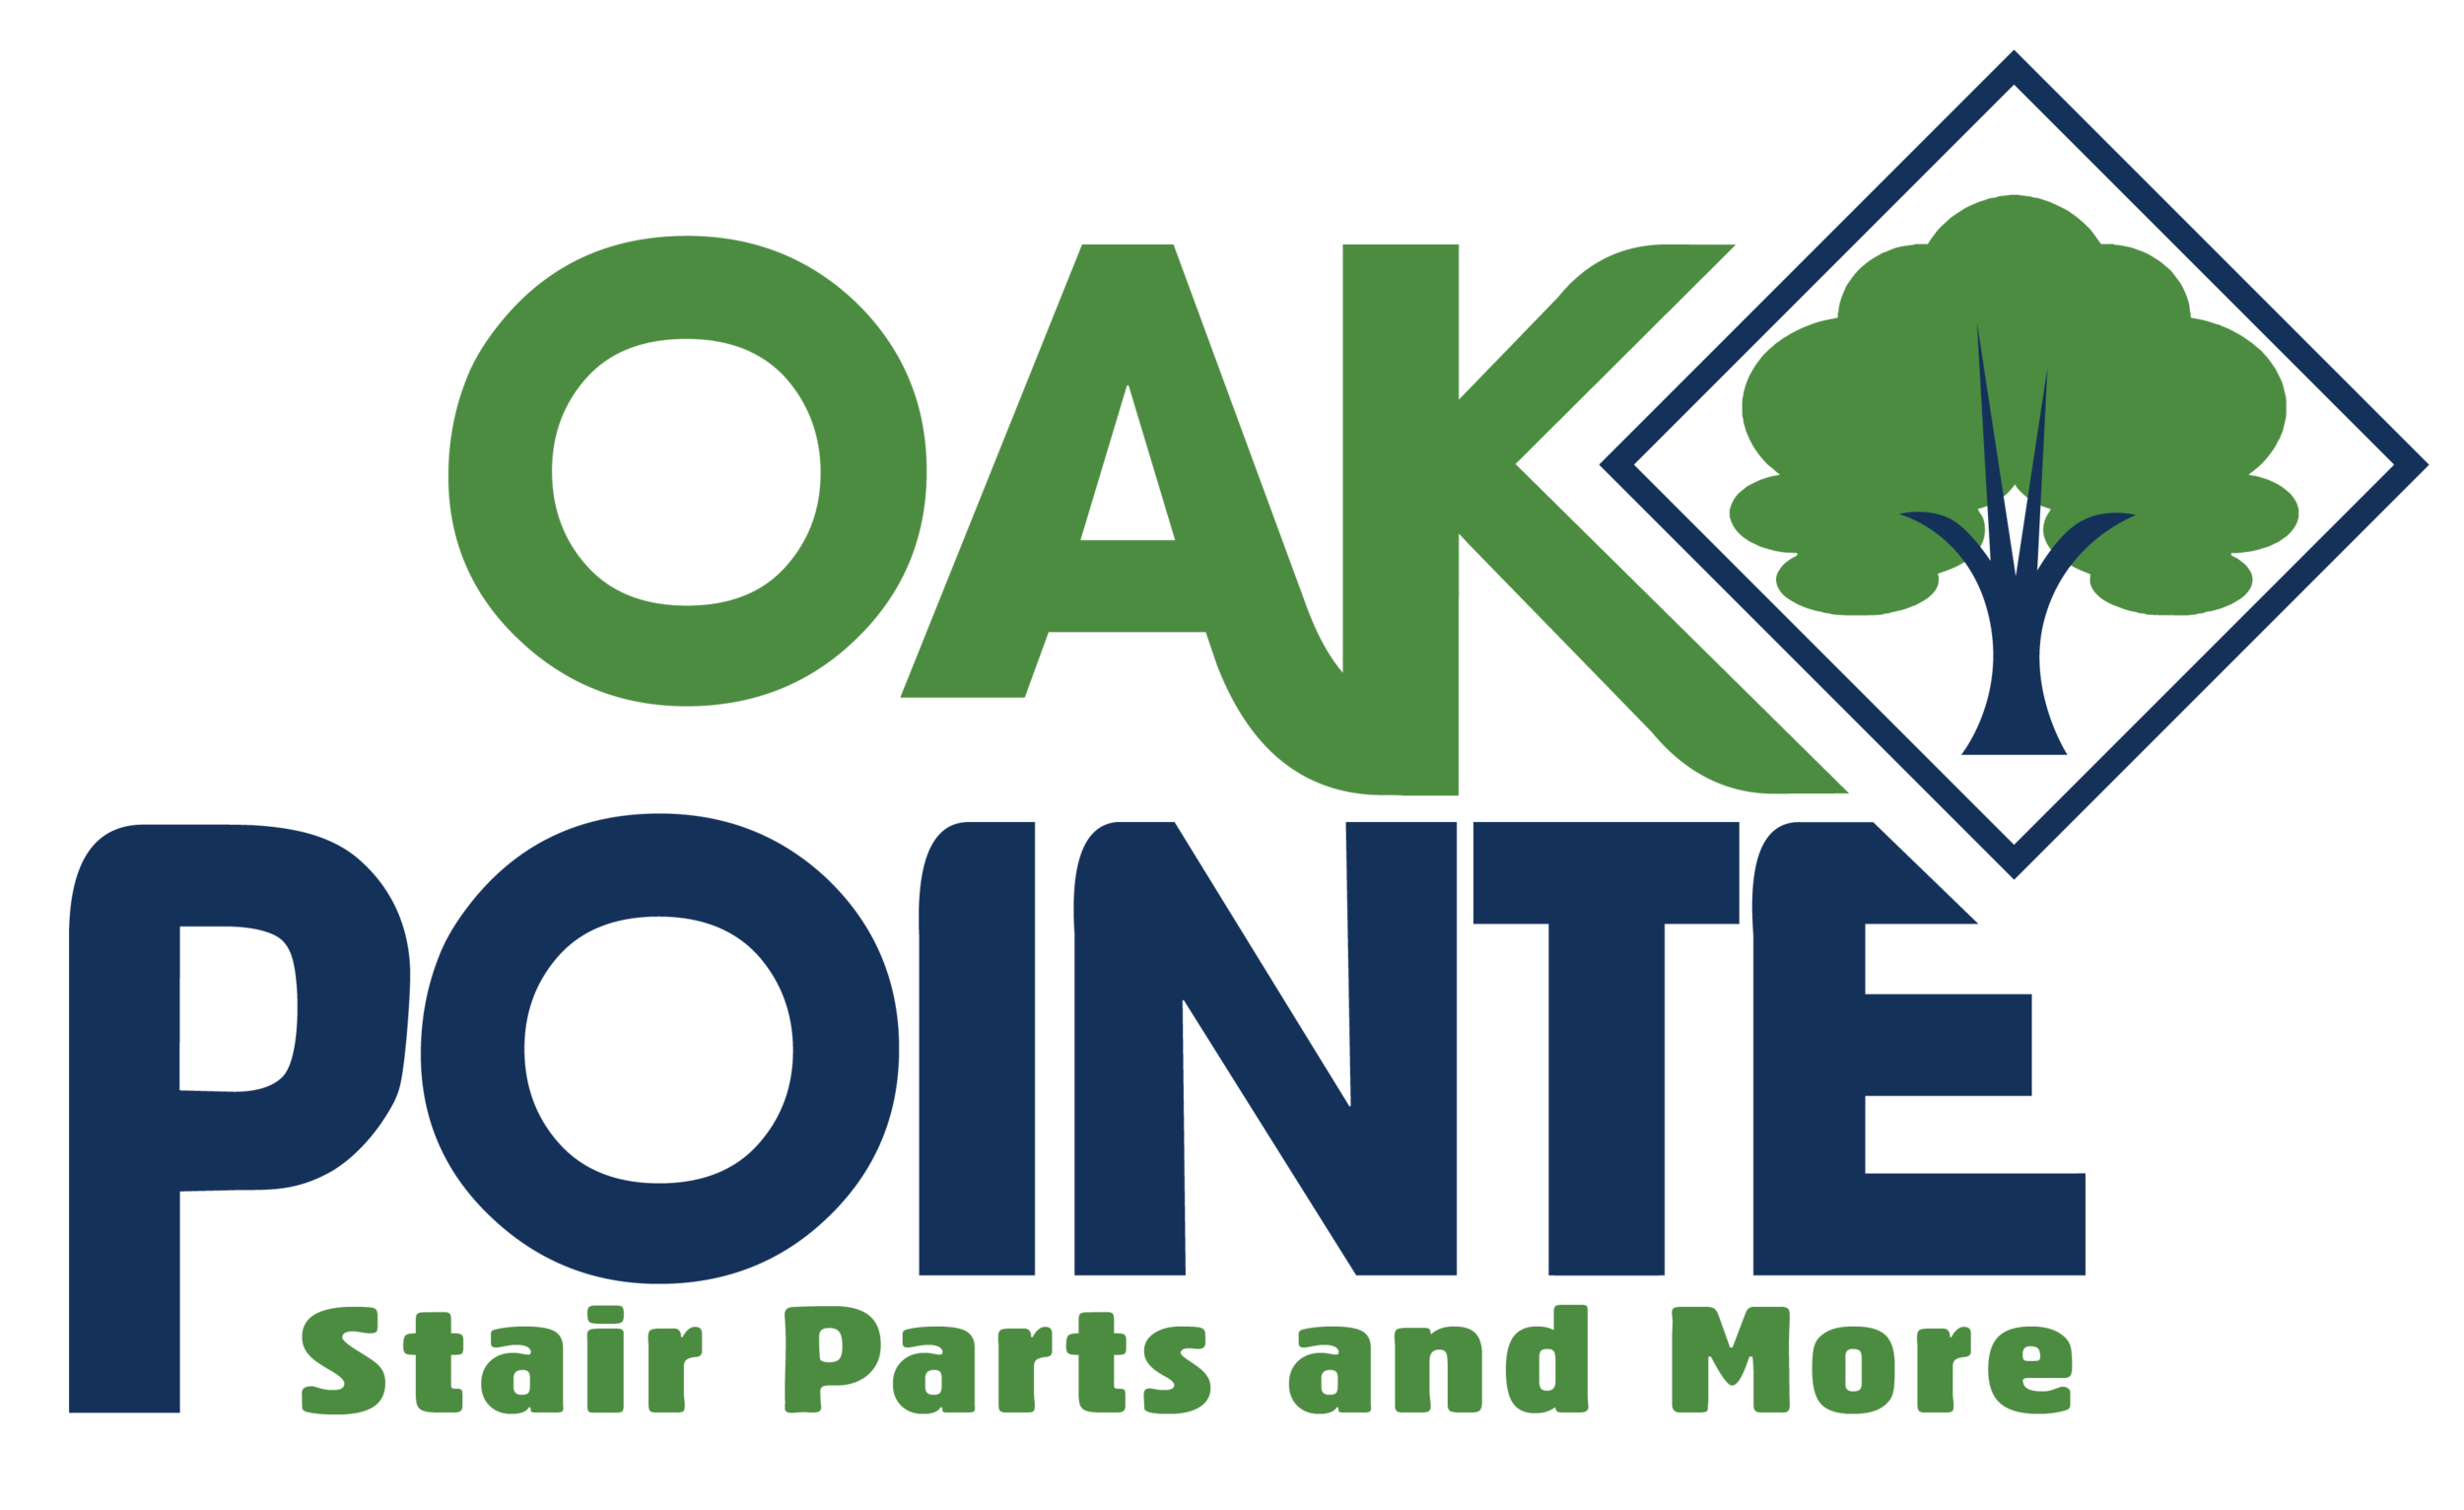 Oak Pointe, Stair Parts and More